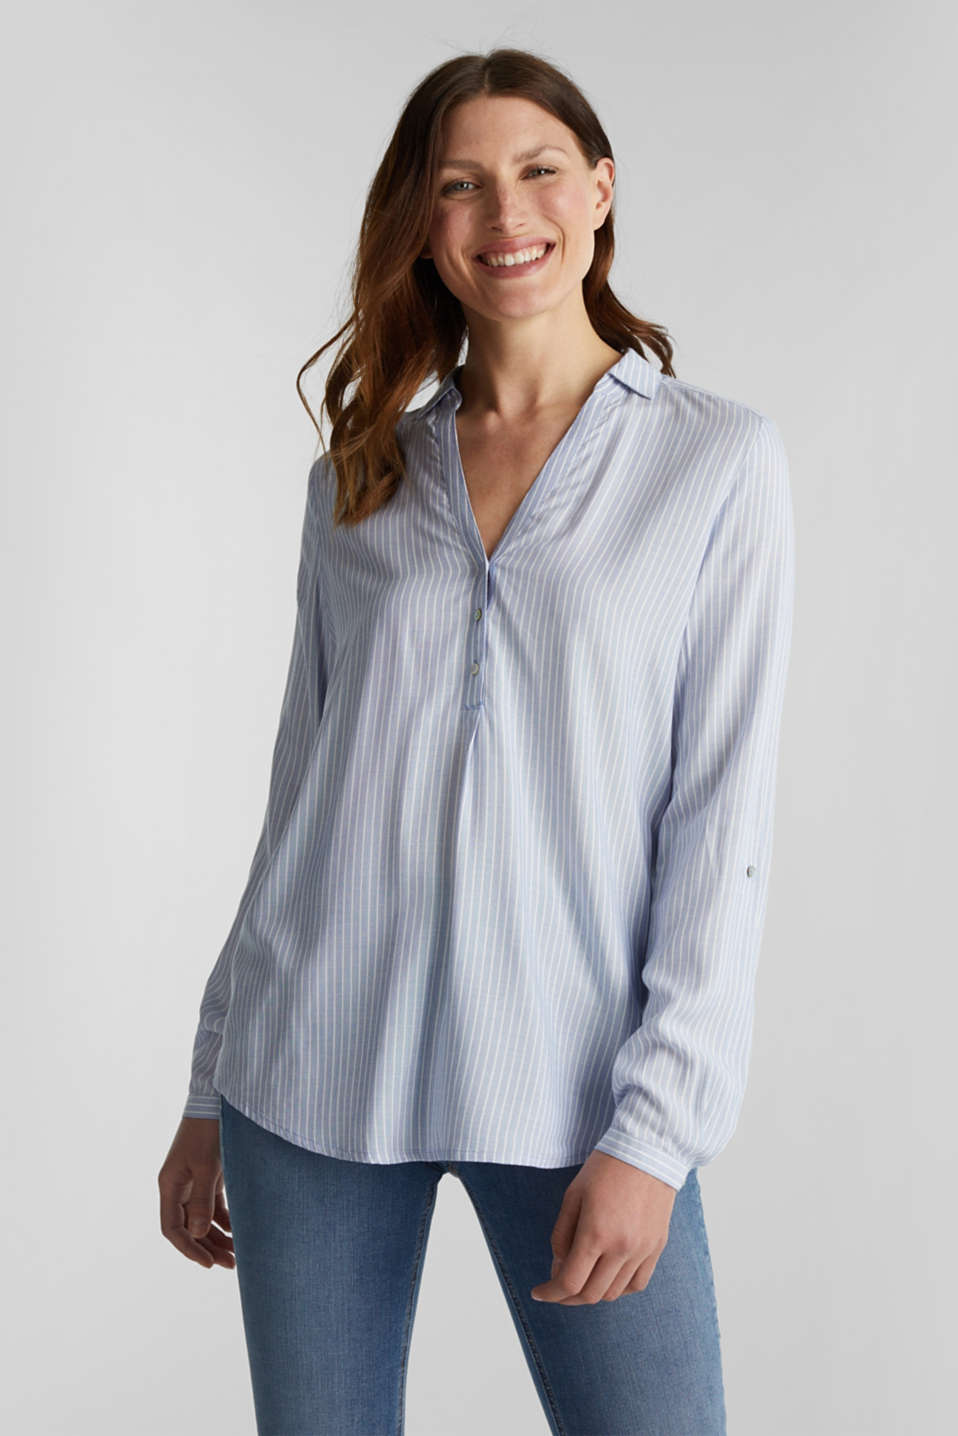 Esprit - Shirt blouse with stripes and turn-up sleeves